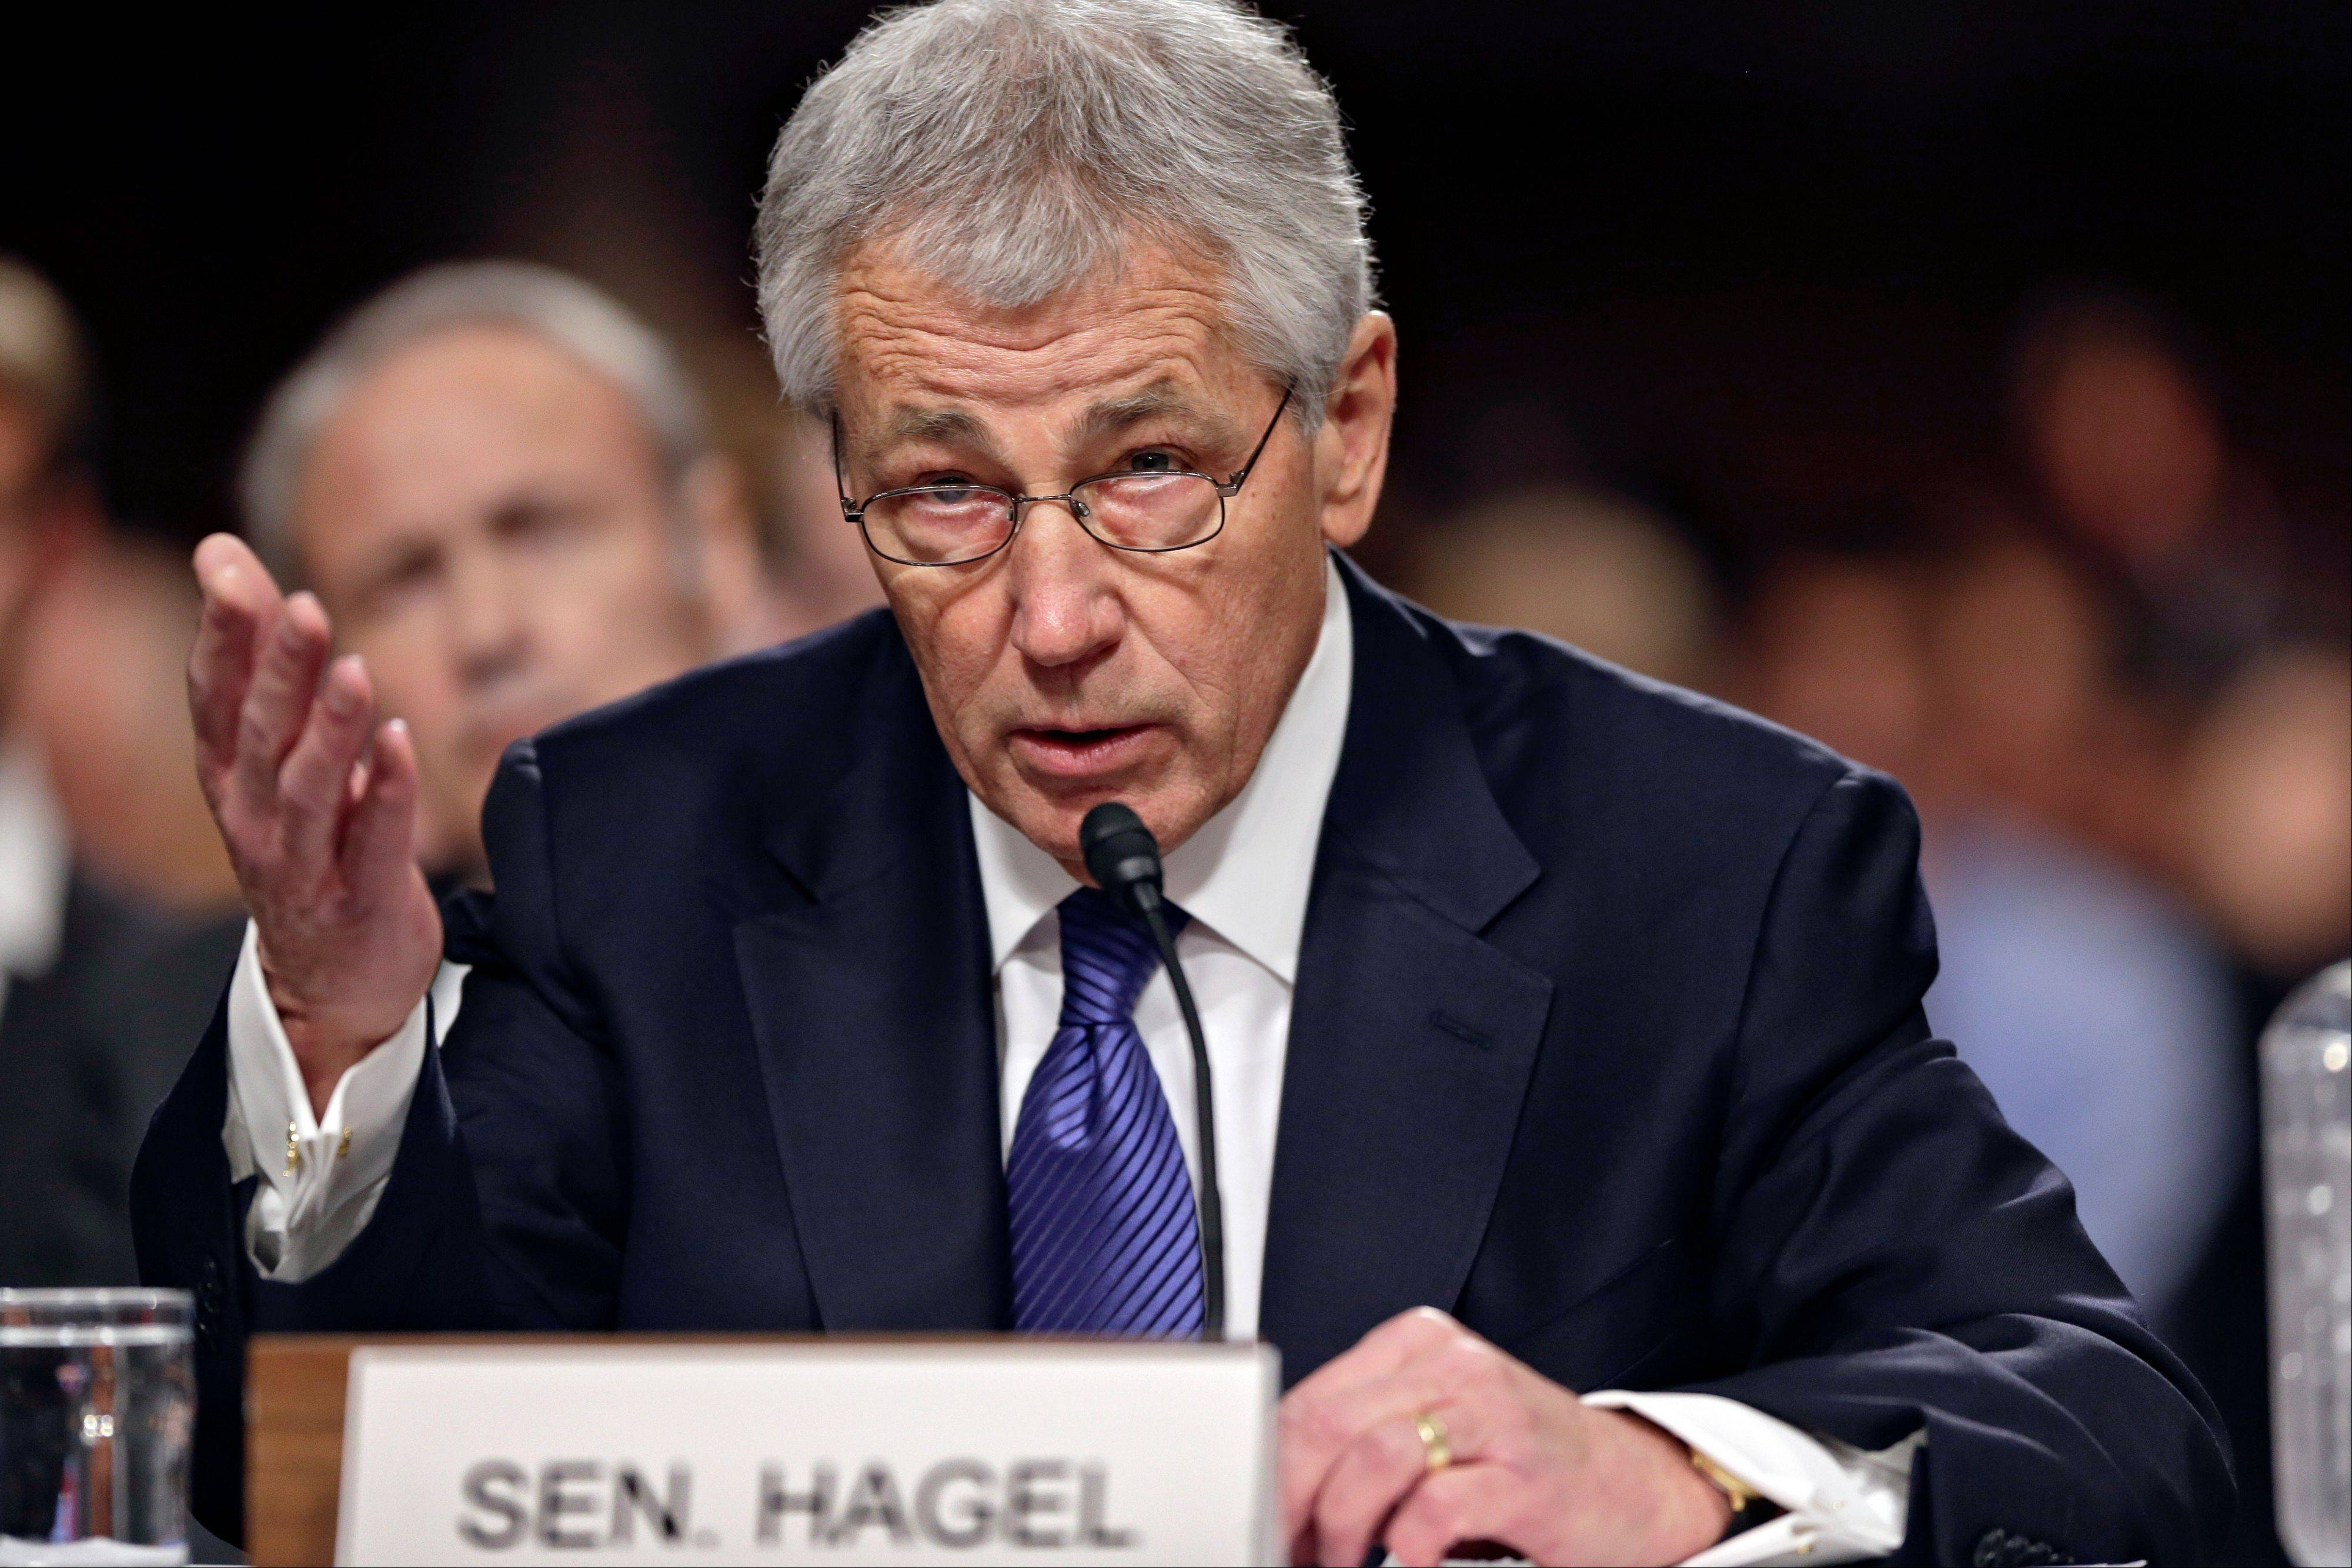 Republican Chuck Hagel, President Obama's choice for defense secretary, testifies before the Senate Armed Services Committee during his confirmation hearing, on Capitol Hill in Washington, Thursday, Jan. 31, 2013.